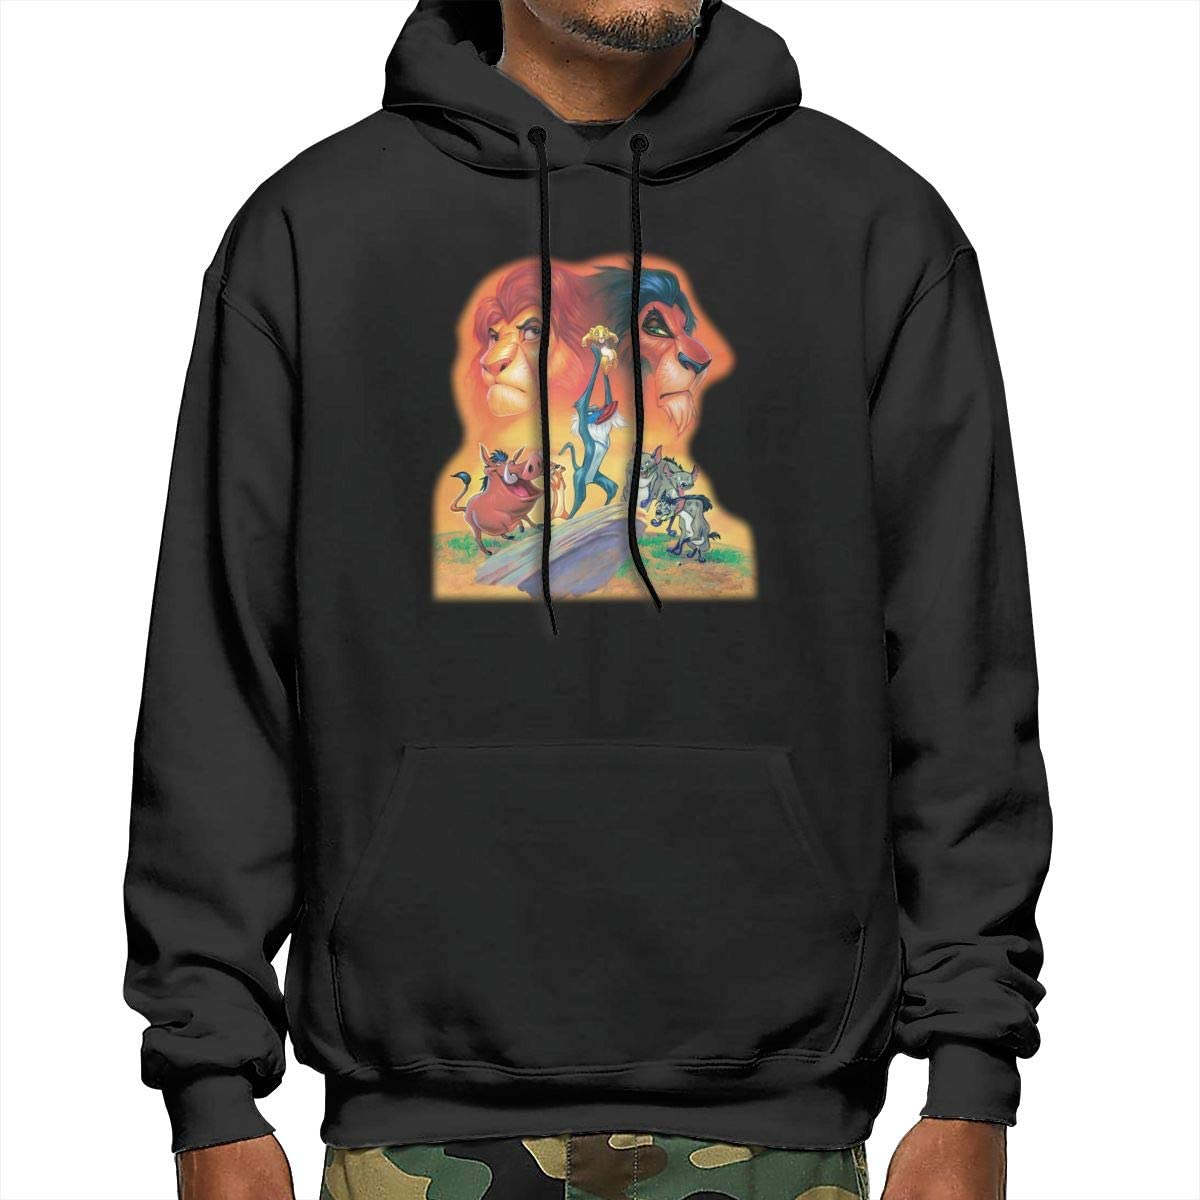 EVE JOHN Black The/_Lion/_Ki/_ng Hoodie Hood Stylish Hooded Sweater for Mens